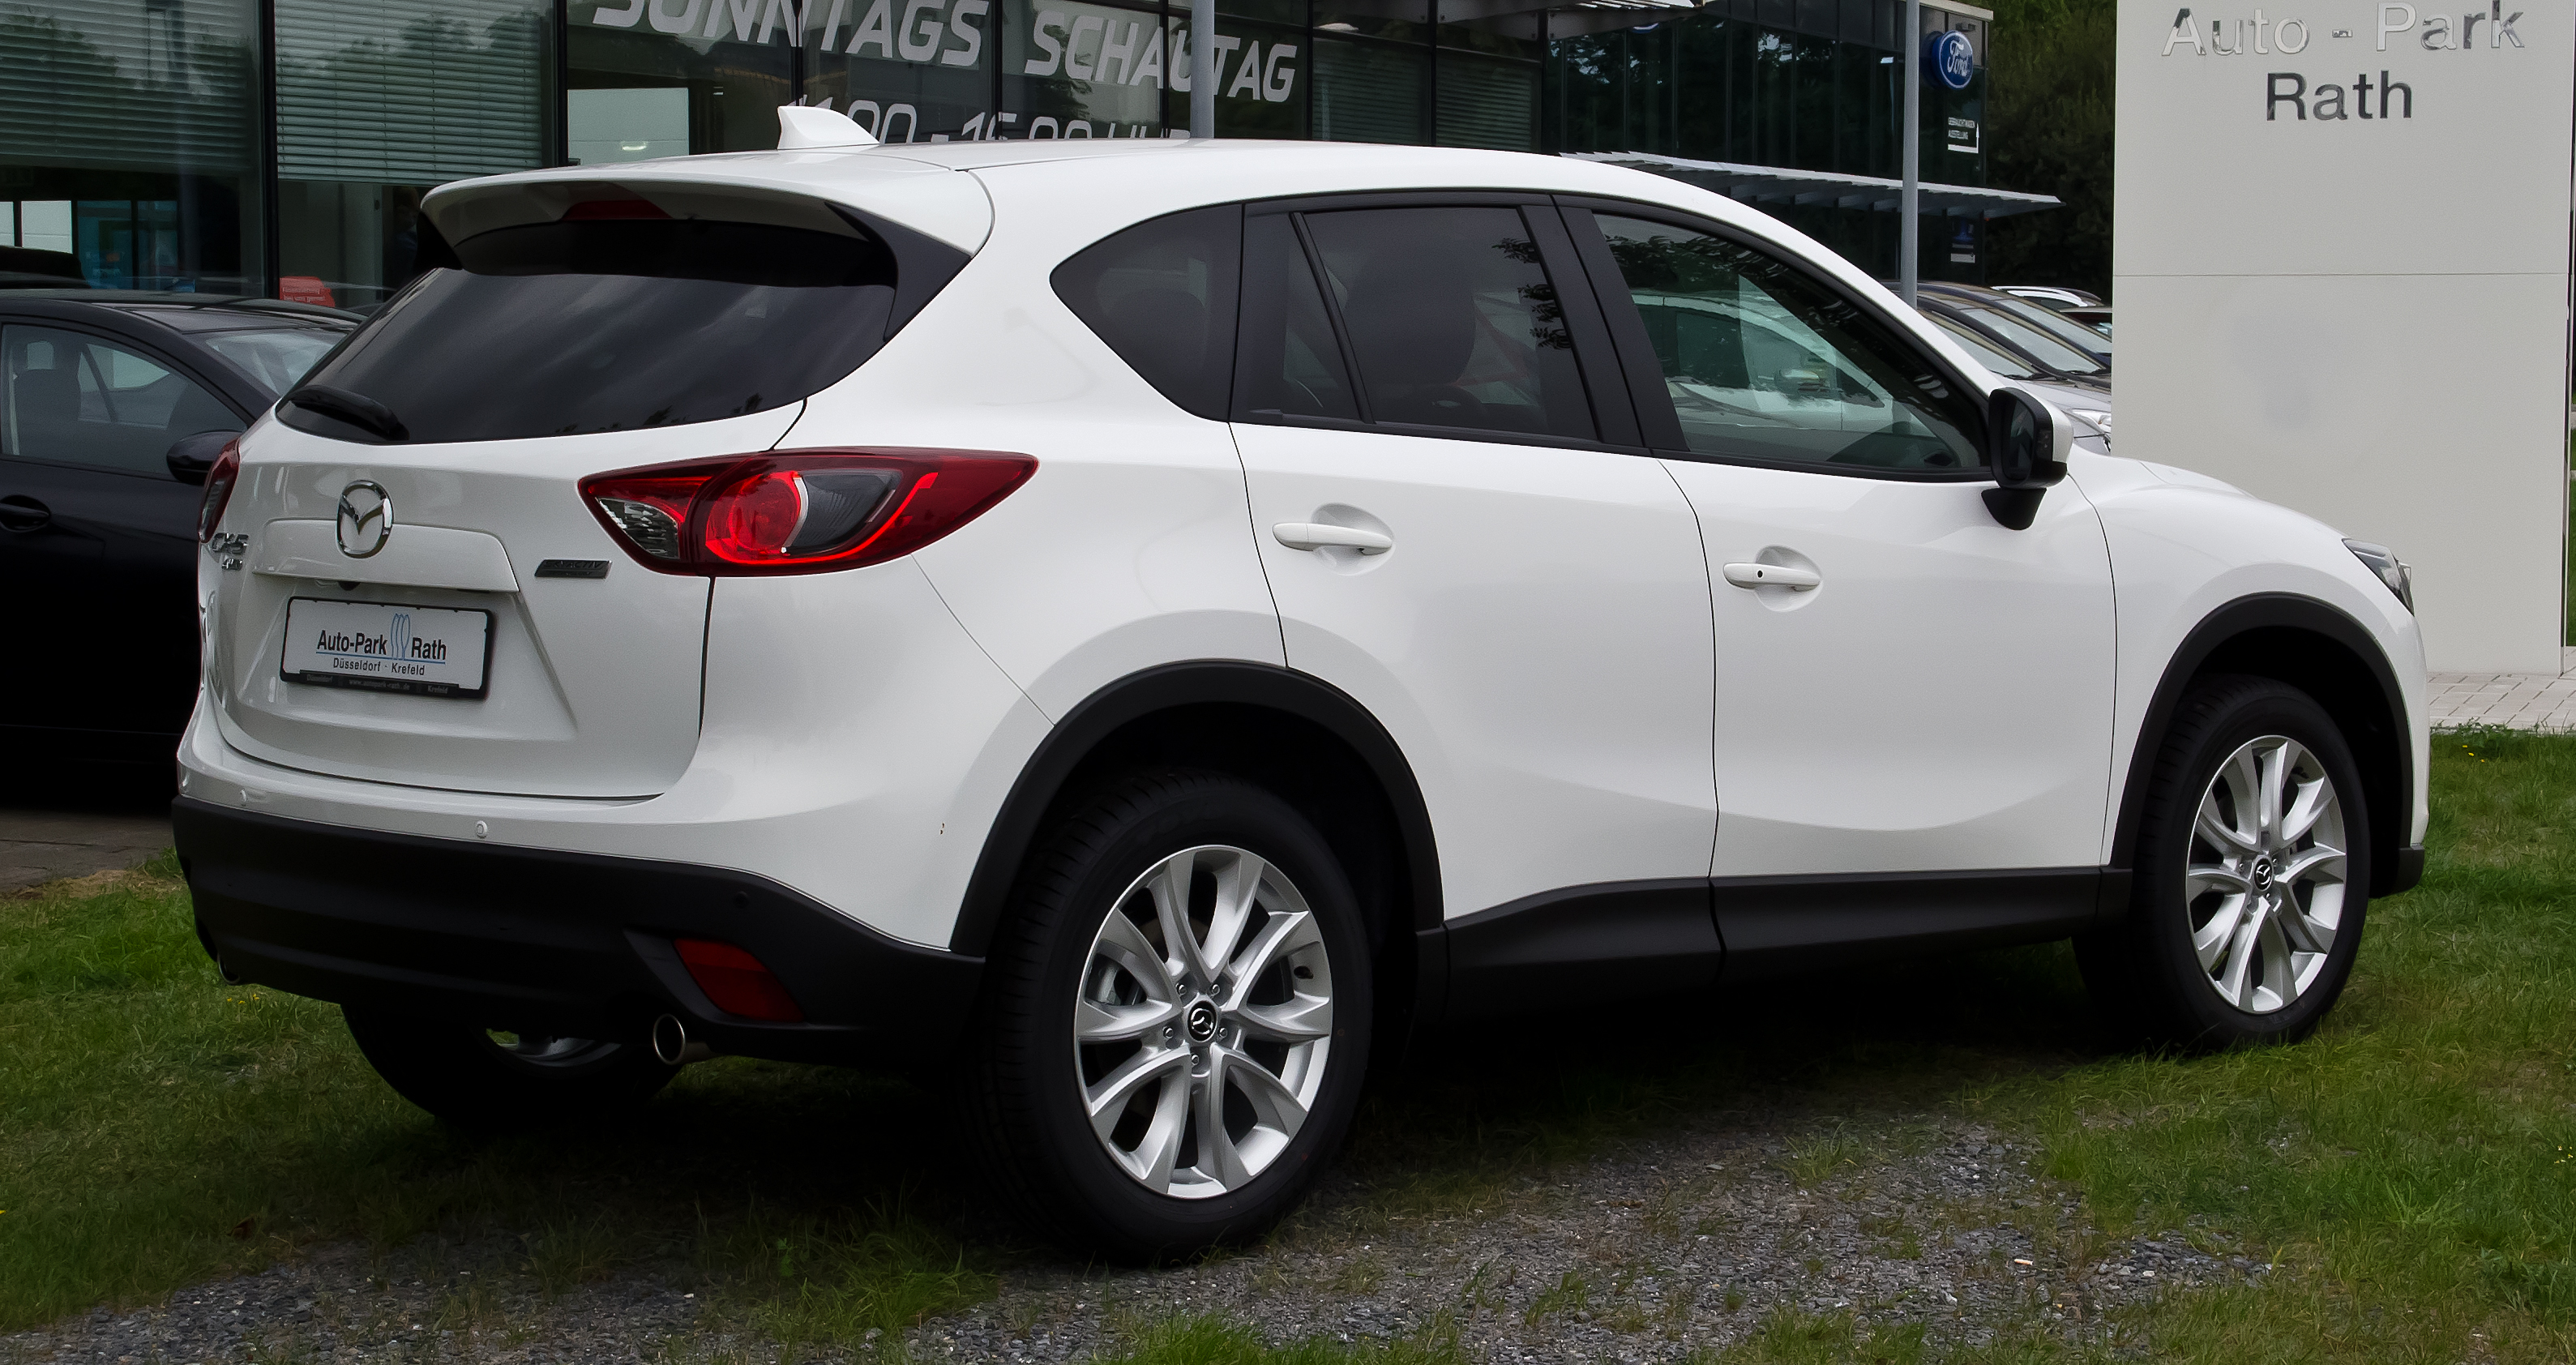 dodge suv indonesia with File Mazda Cx 5 2 0 Skyactiv G Awd Sports Line  E2 80 93 Heckansicht  3  September 2012  D C3 Bcsseldorf on Farrari Wallpaper together with Toyota Chr Concorrente Do Honda Hrv 2016 2017 in addition Cami a Urban as well 2017 Honda Br V New Series Youtube Pertaining To 2017 Honda Brv Philippines likewise Honda Hrv 2017 Inside Specs.